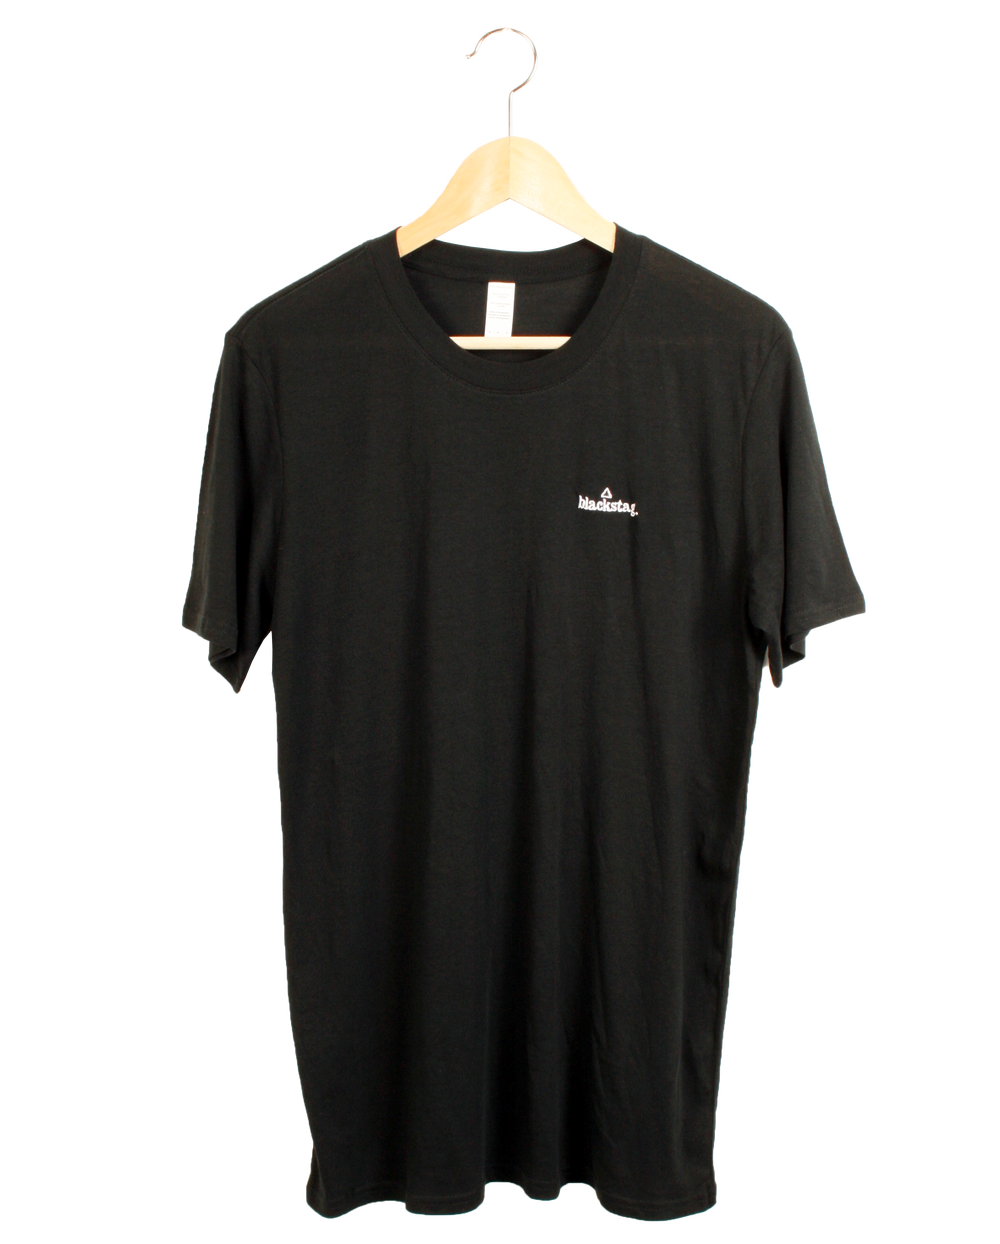 Image of Blackstag ESSENTIAL black t-shirt